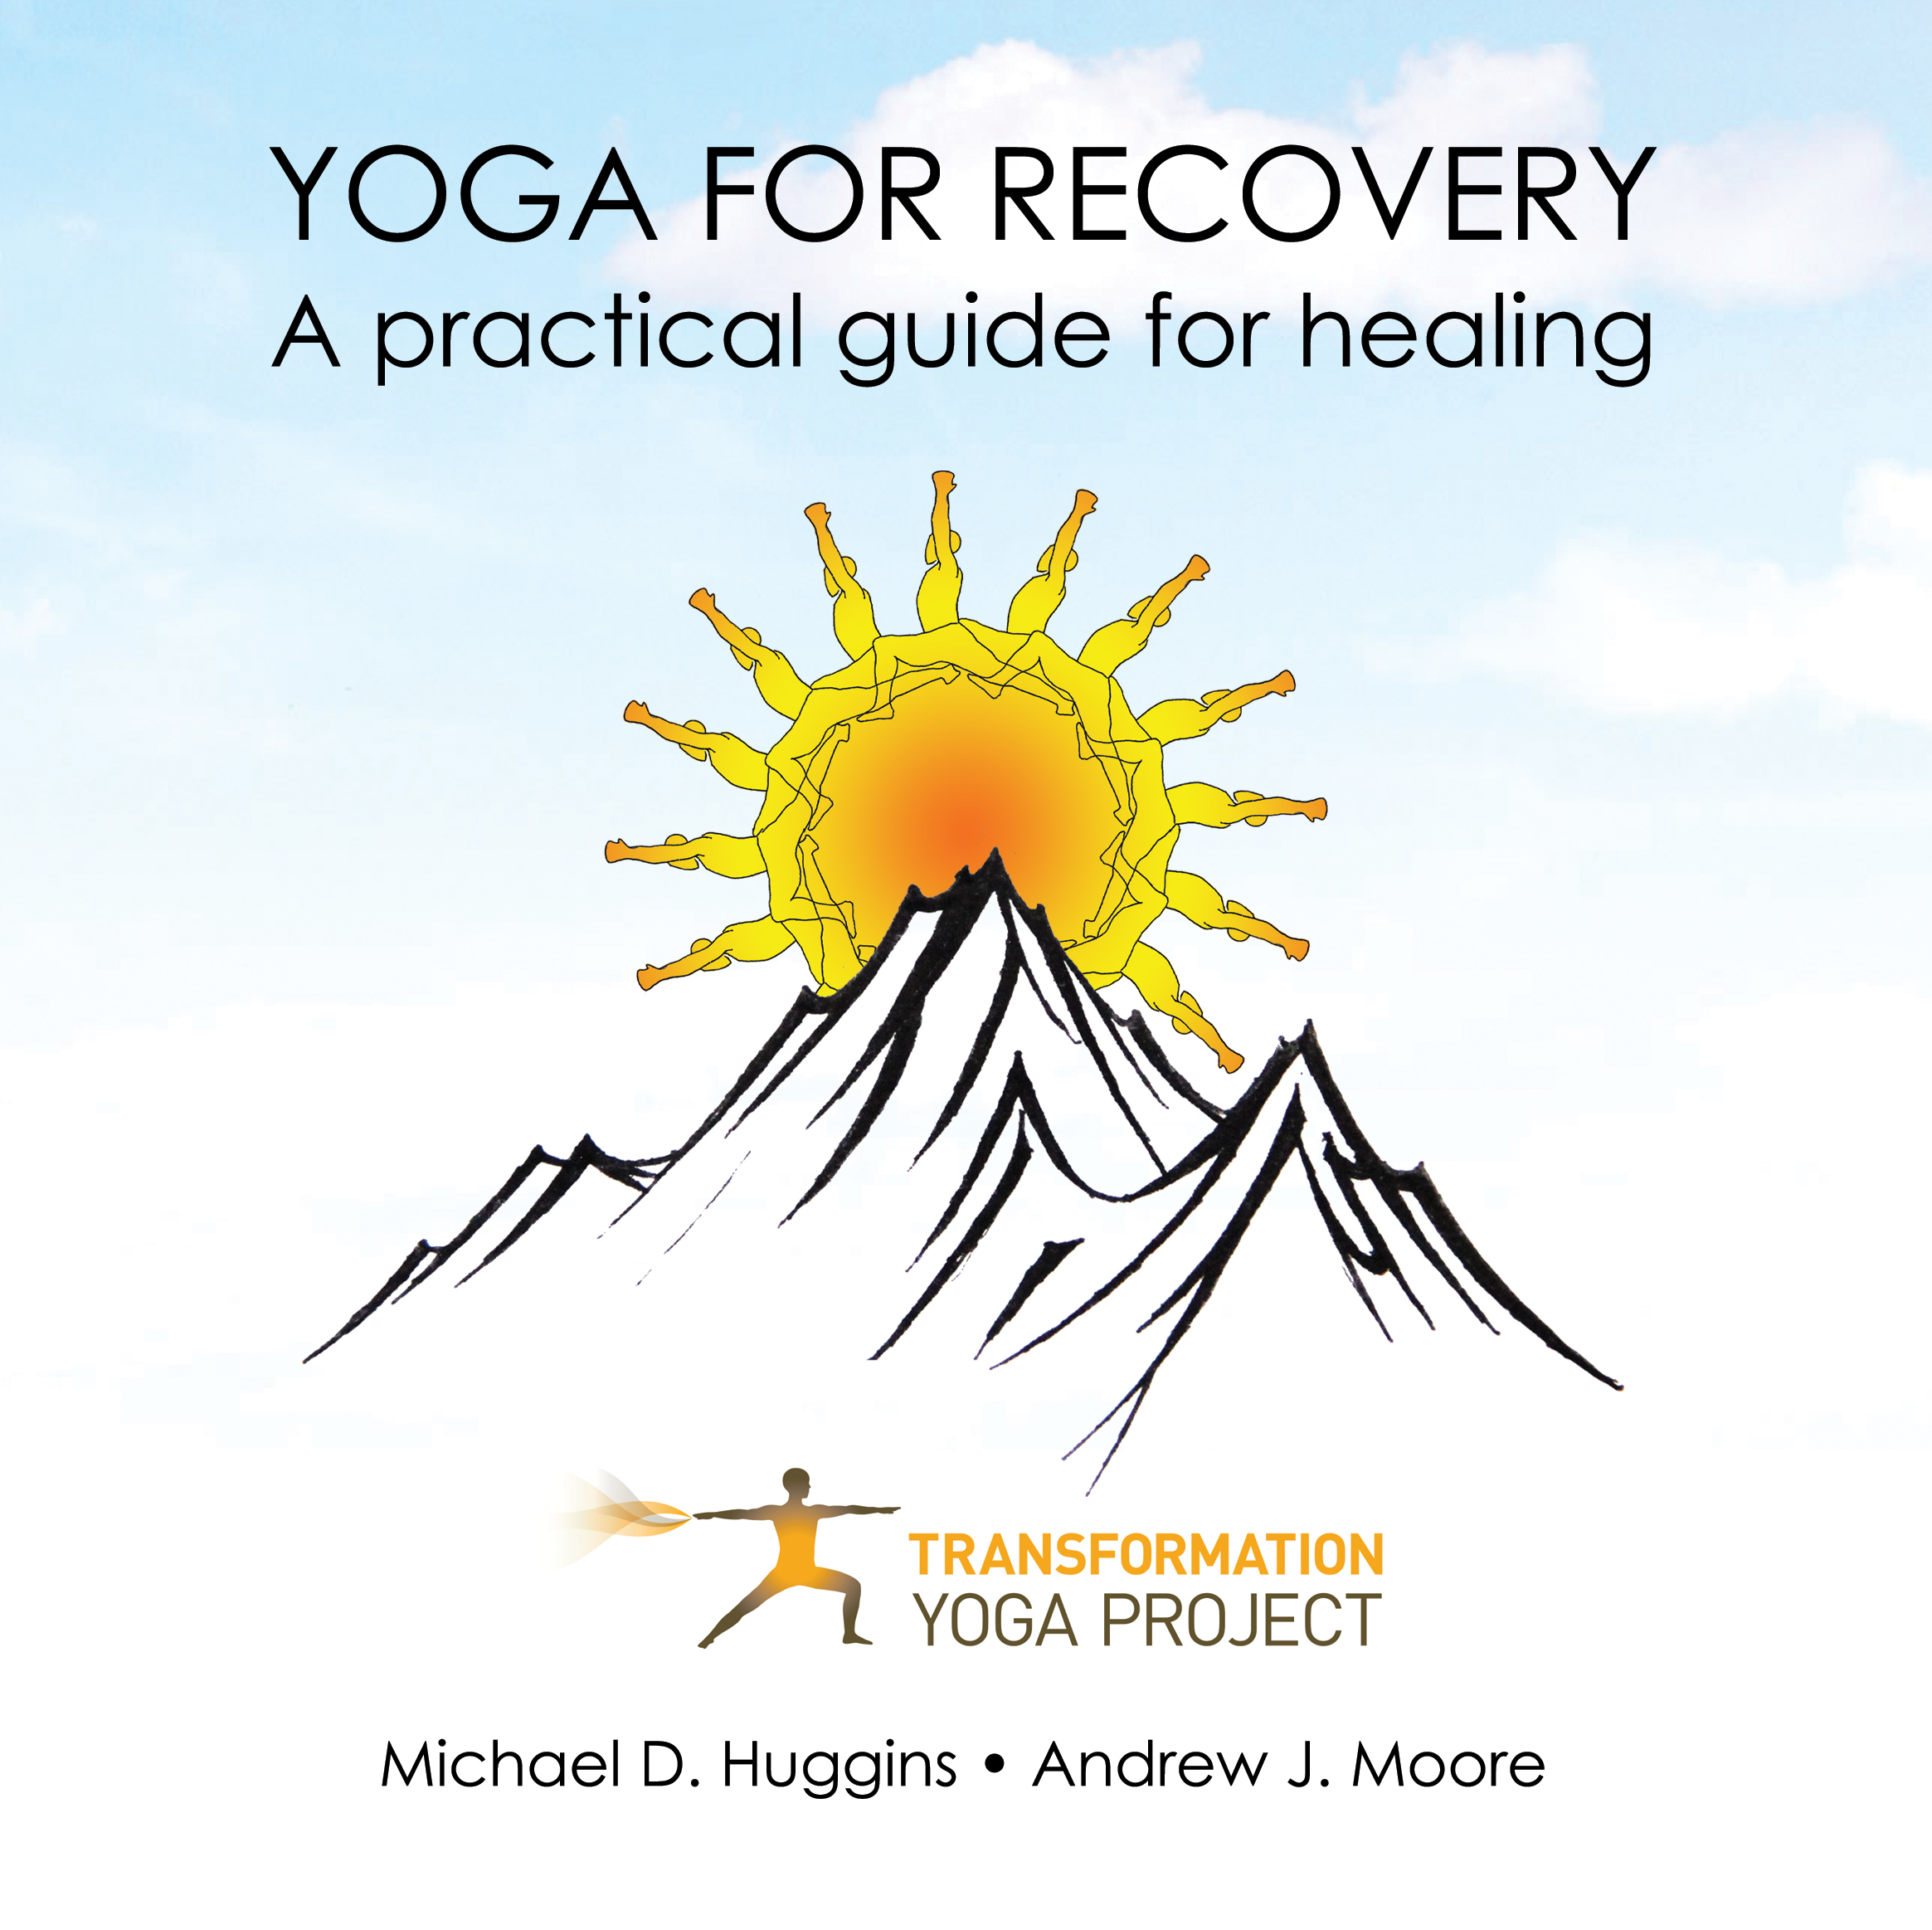 Yoga_For_Recovery_Cover.jpg